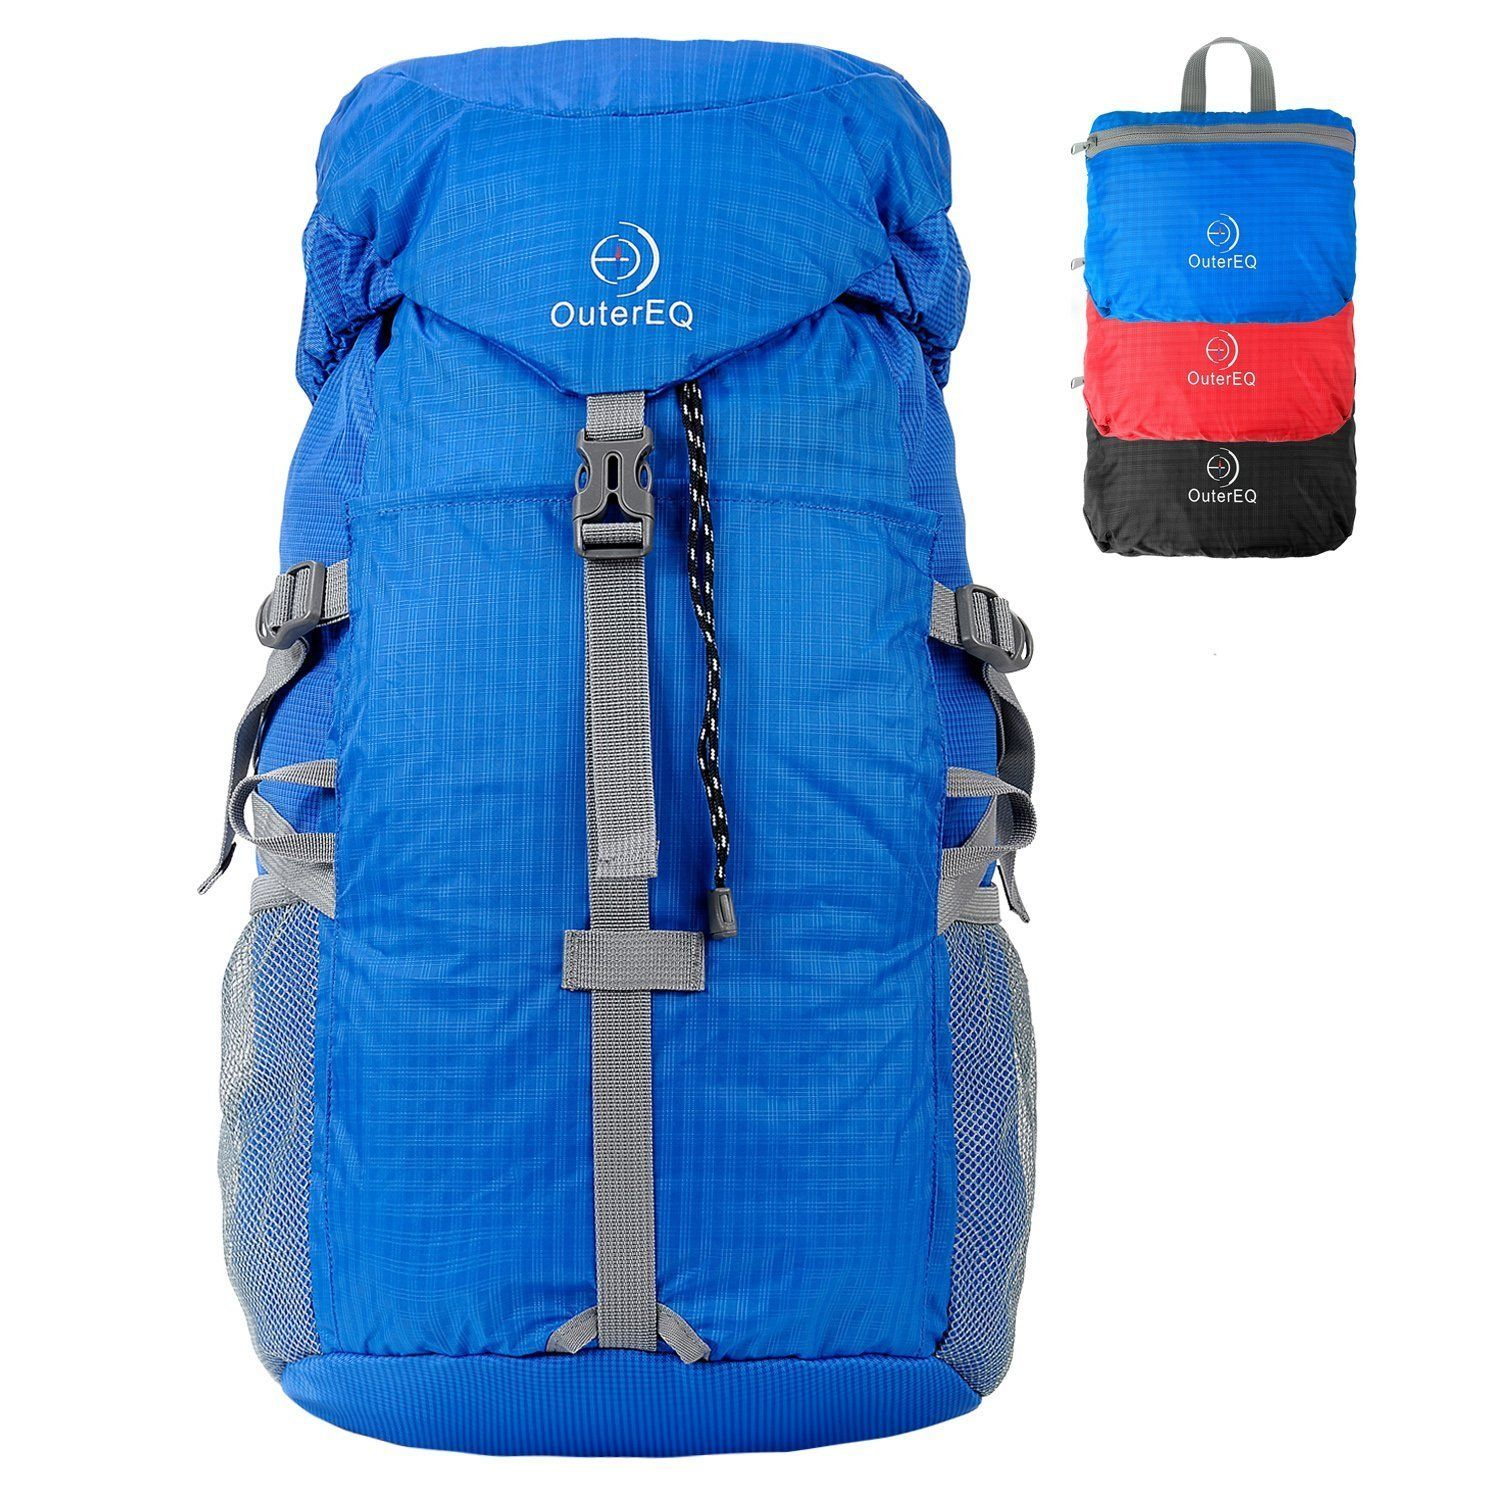 0f3341b3b5 OuterEQ 30L Outdoor Travel Backpack Hiking Foldable Daypack -- Want to know  more